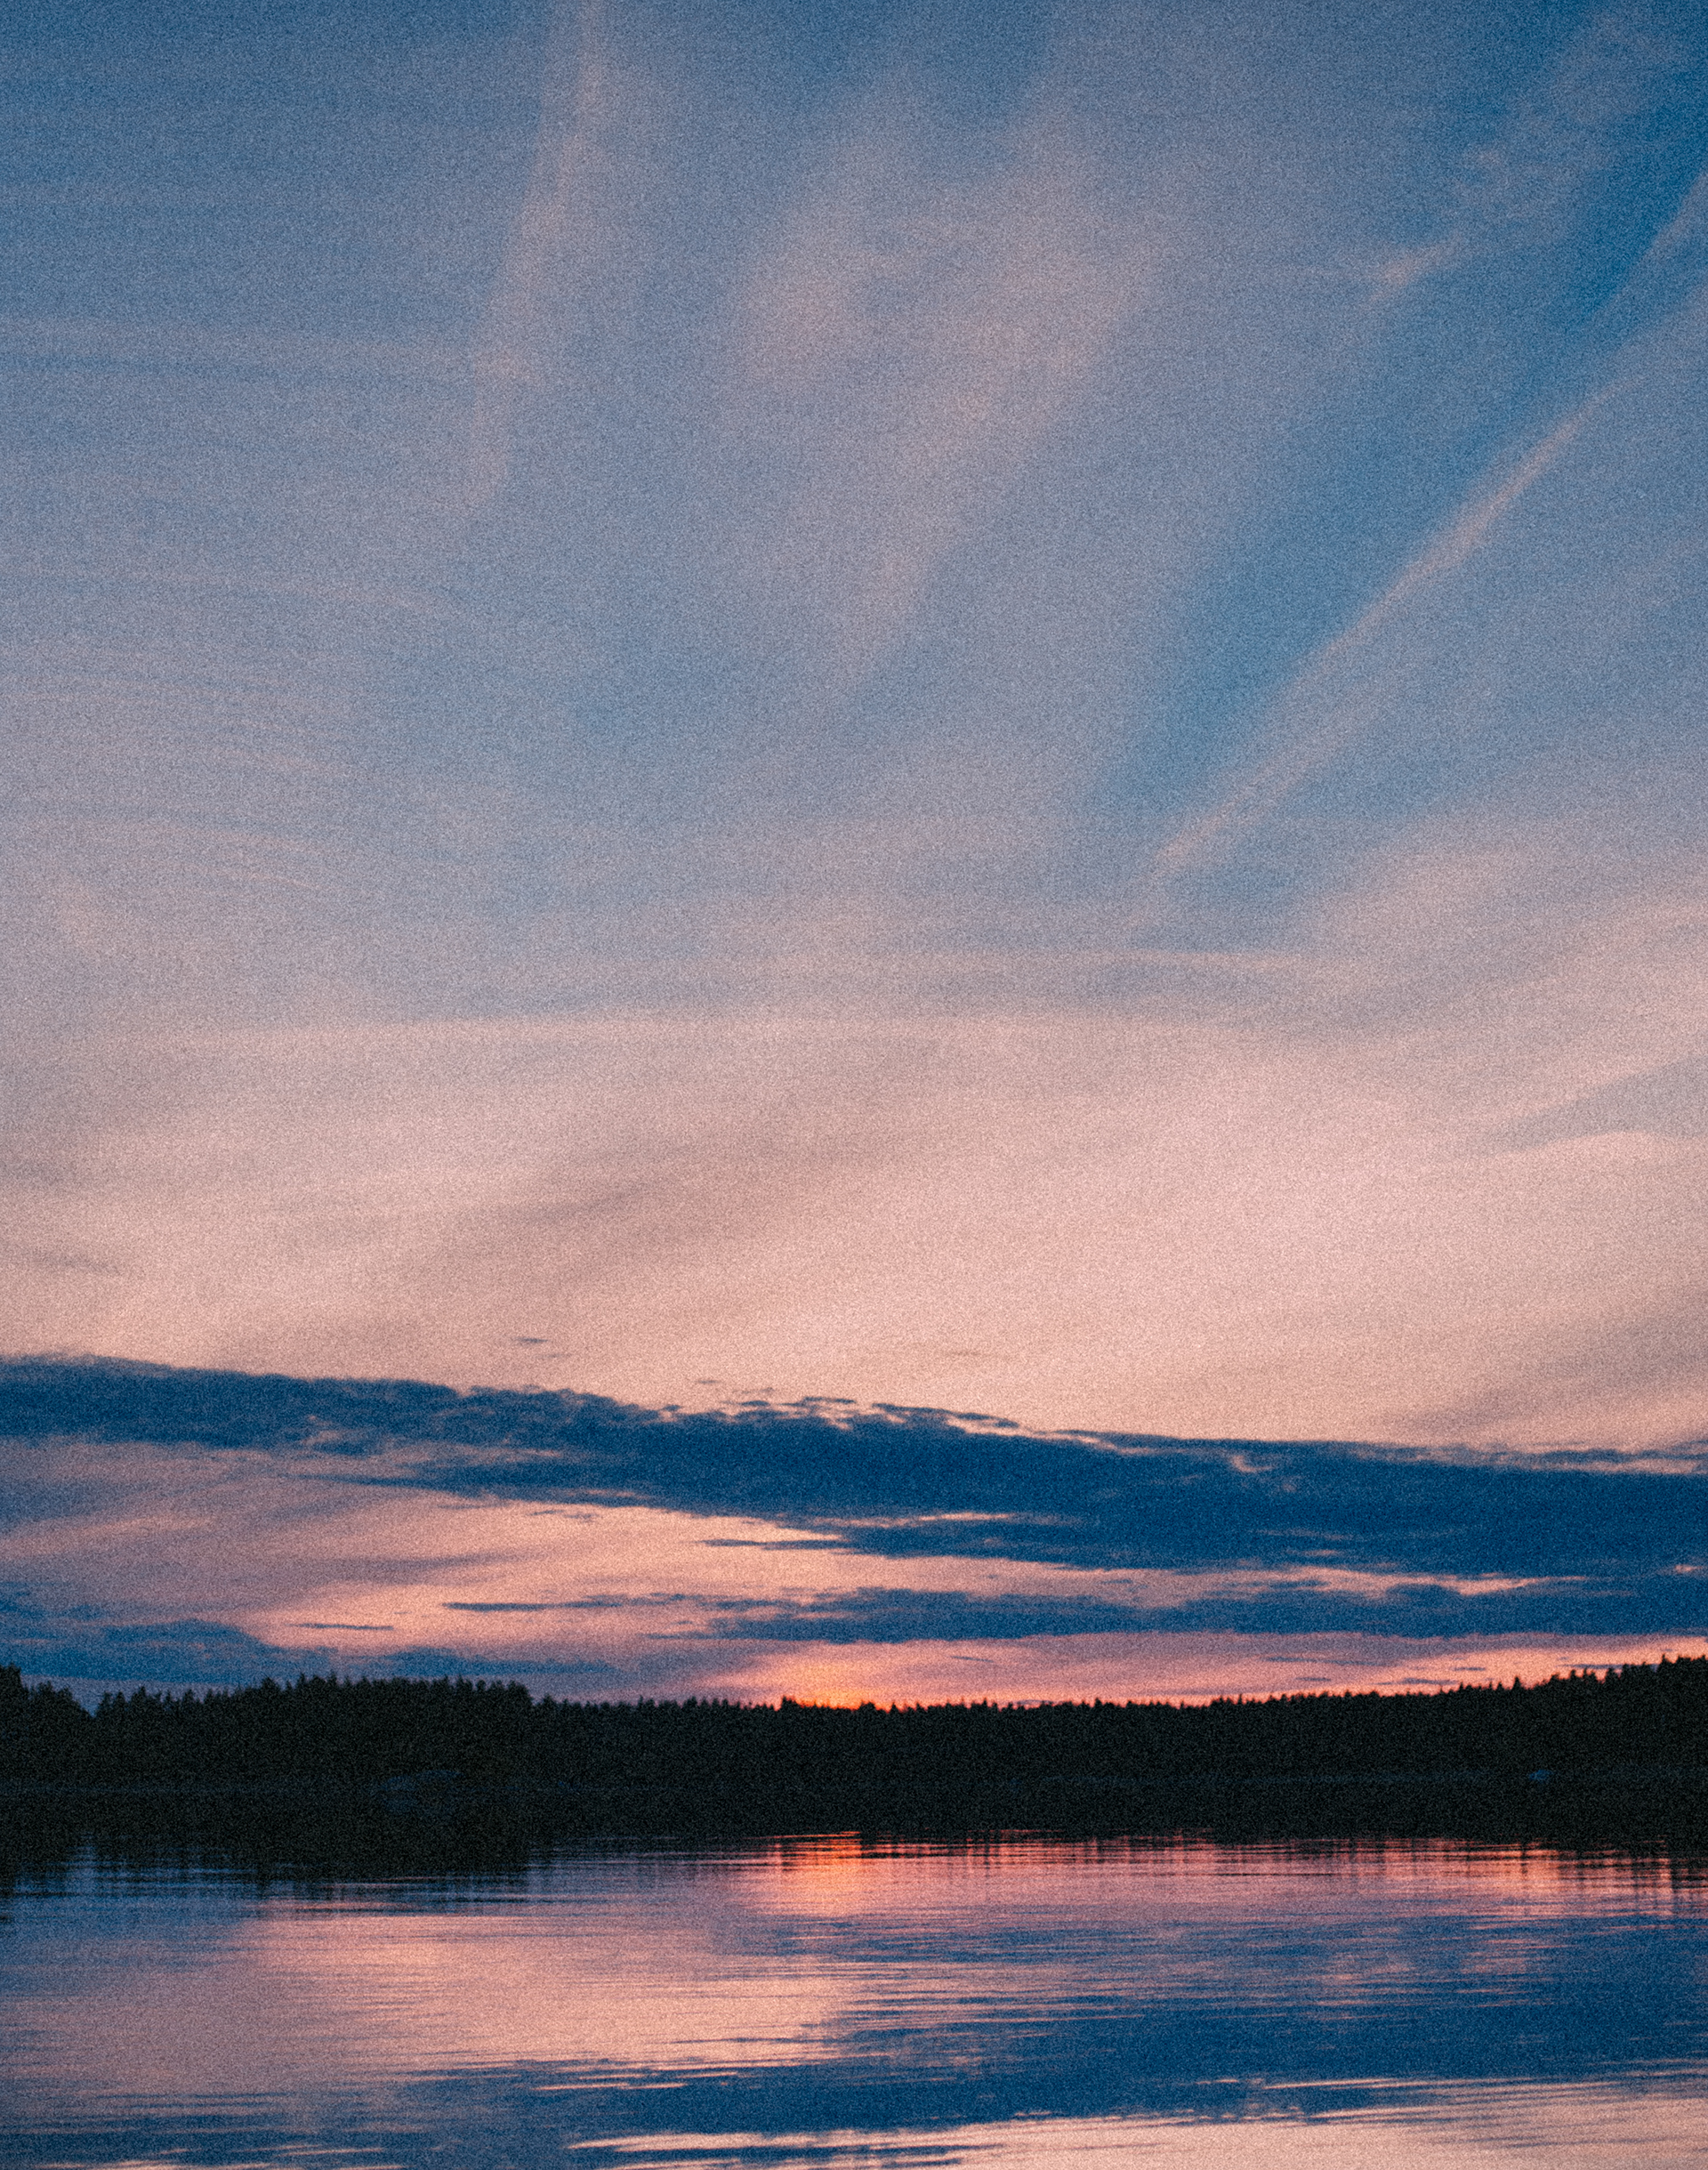 Midsummer sunset in lake landscape